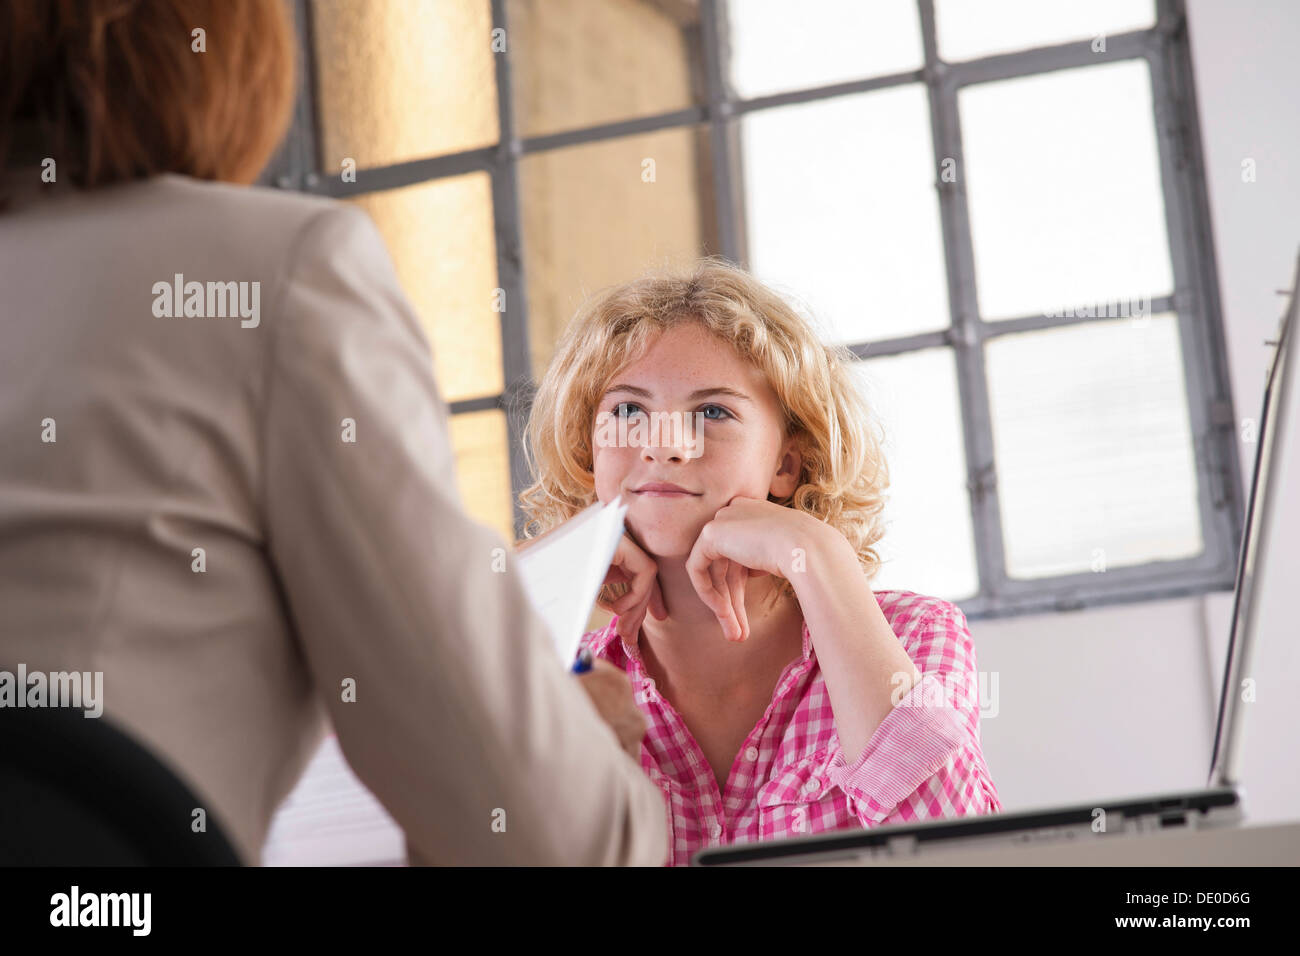 Trainee during an interview with a personnel manager Stock Photo